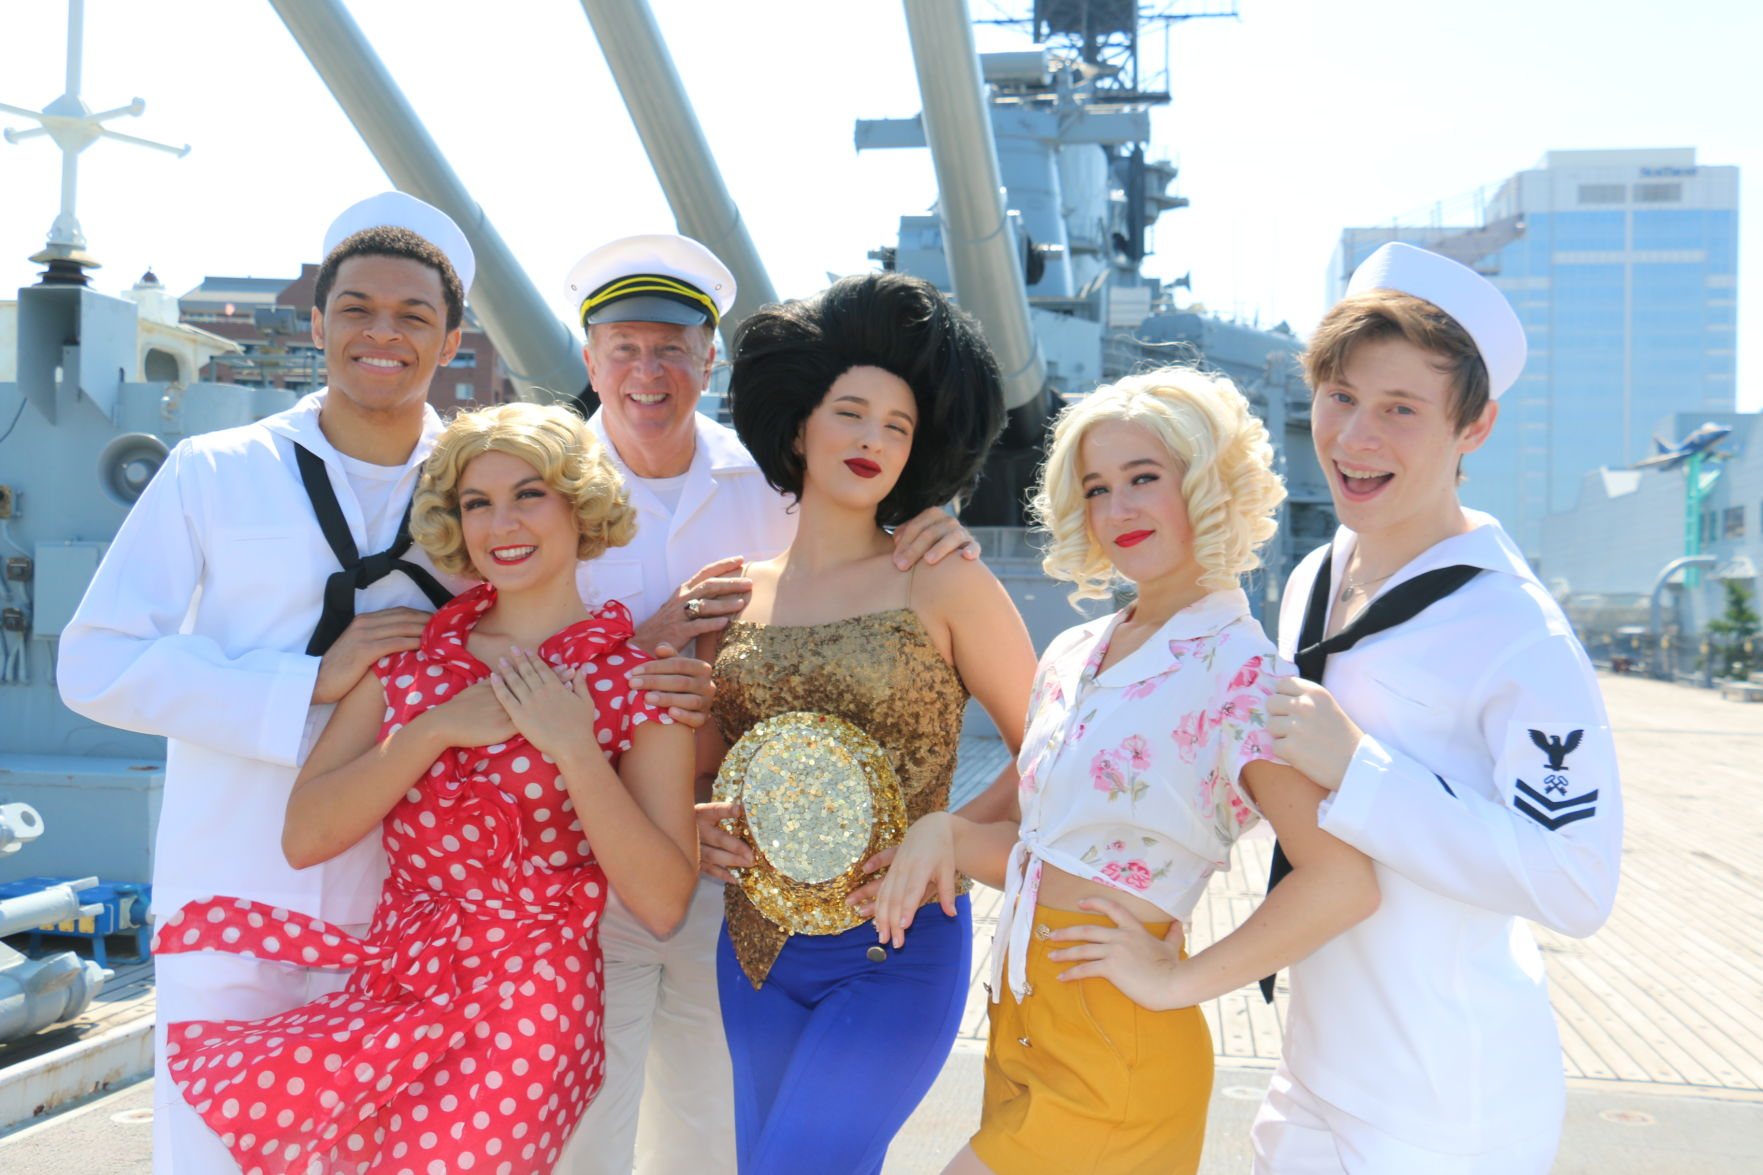 Hurrah Players Broadway Musical Dames At Sea to be performed on the Battleship Wisconsin